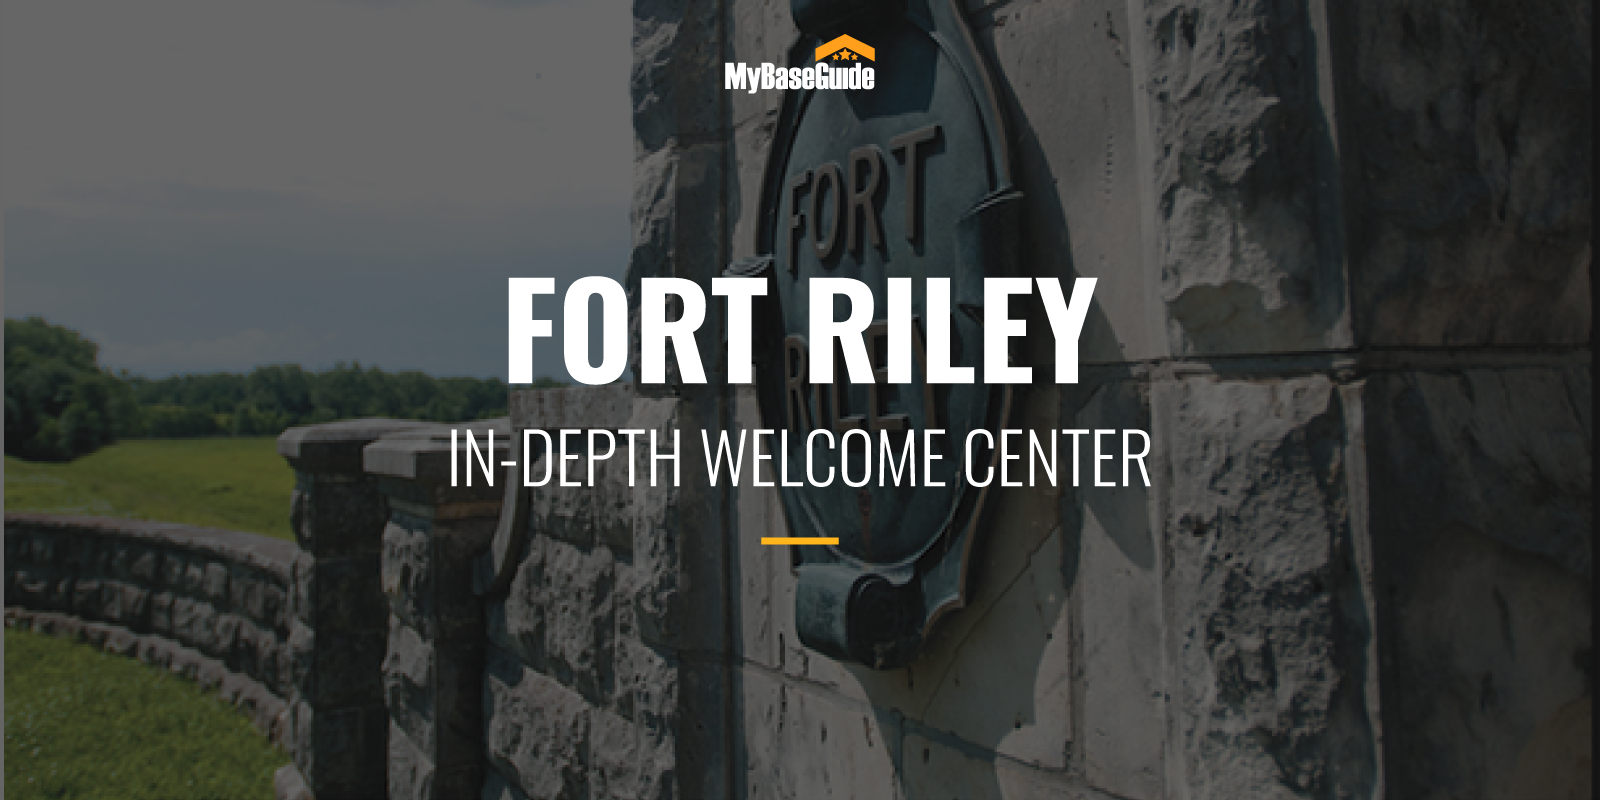 Fort Riley: In-Depth Welcome Center